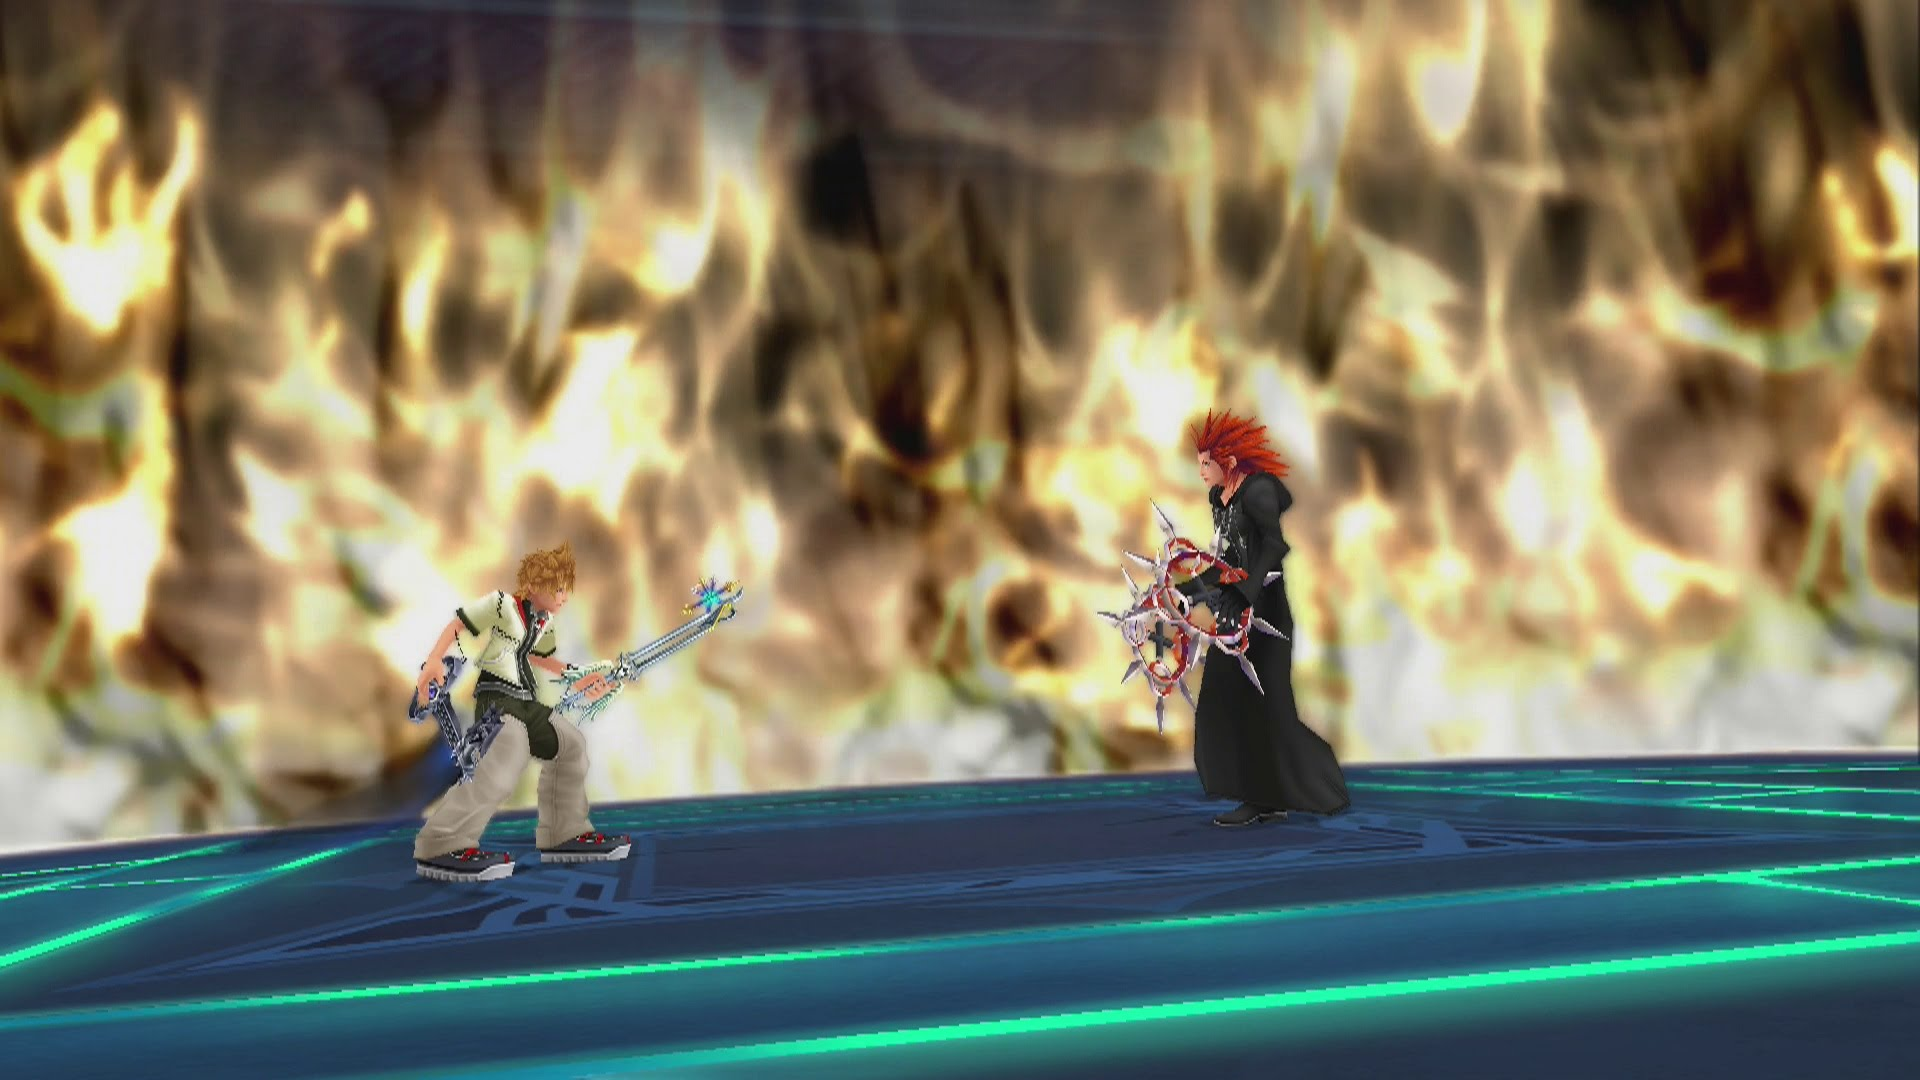 Axel showdown